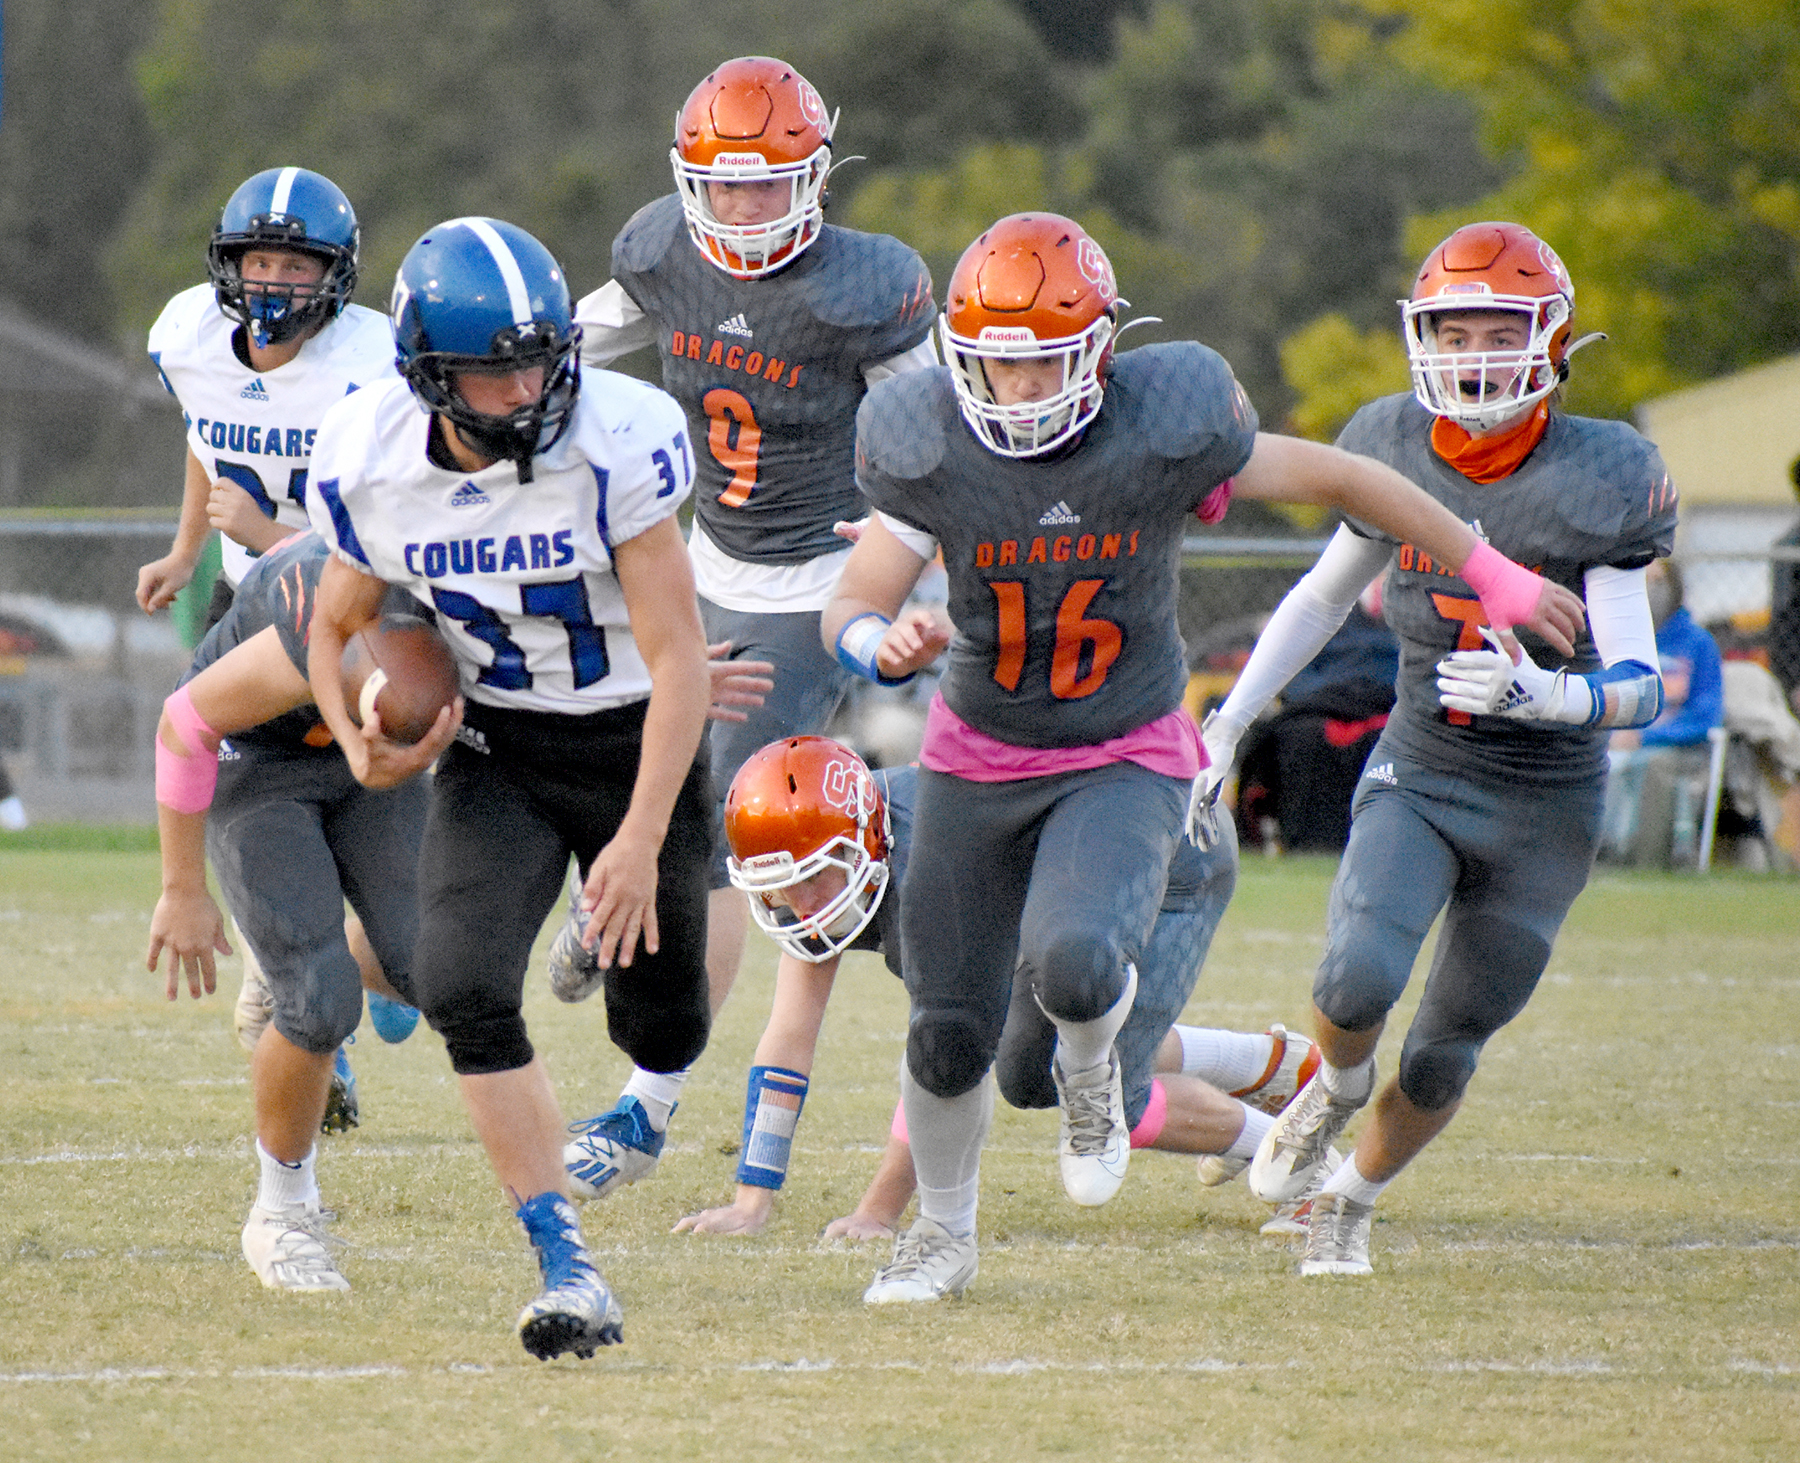 Creek too strong for Cougars